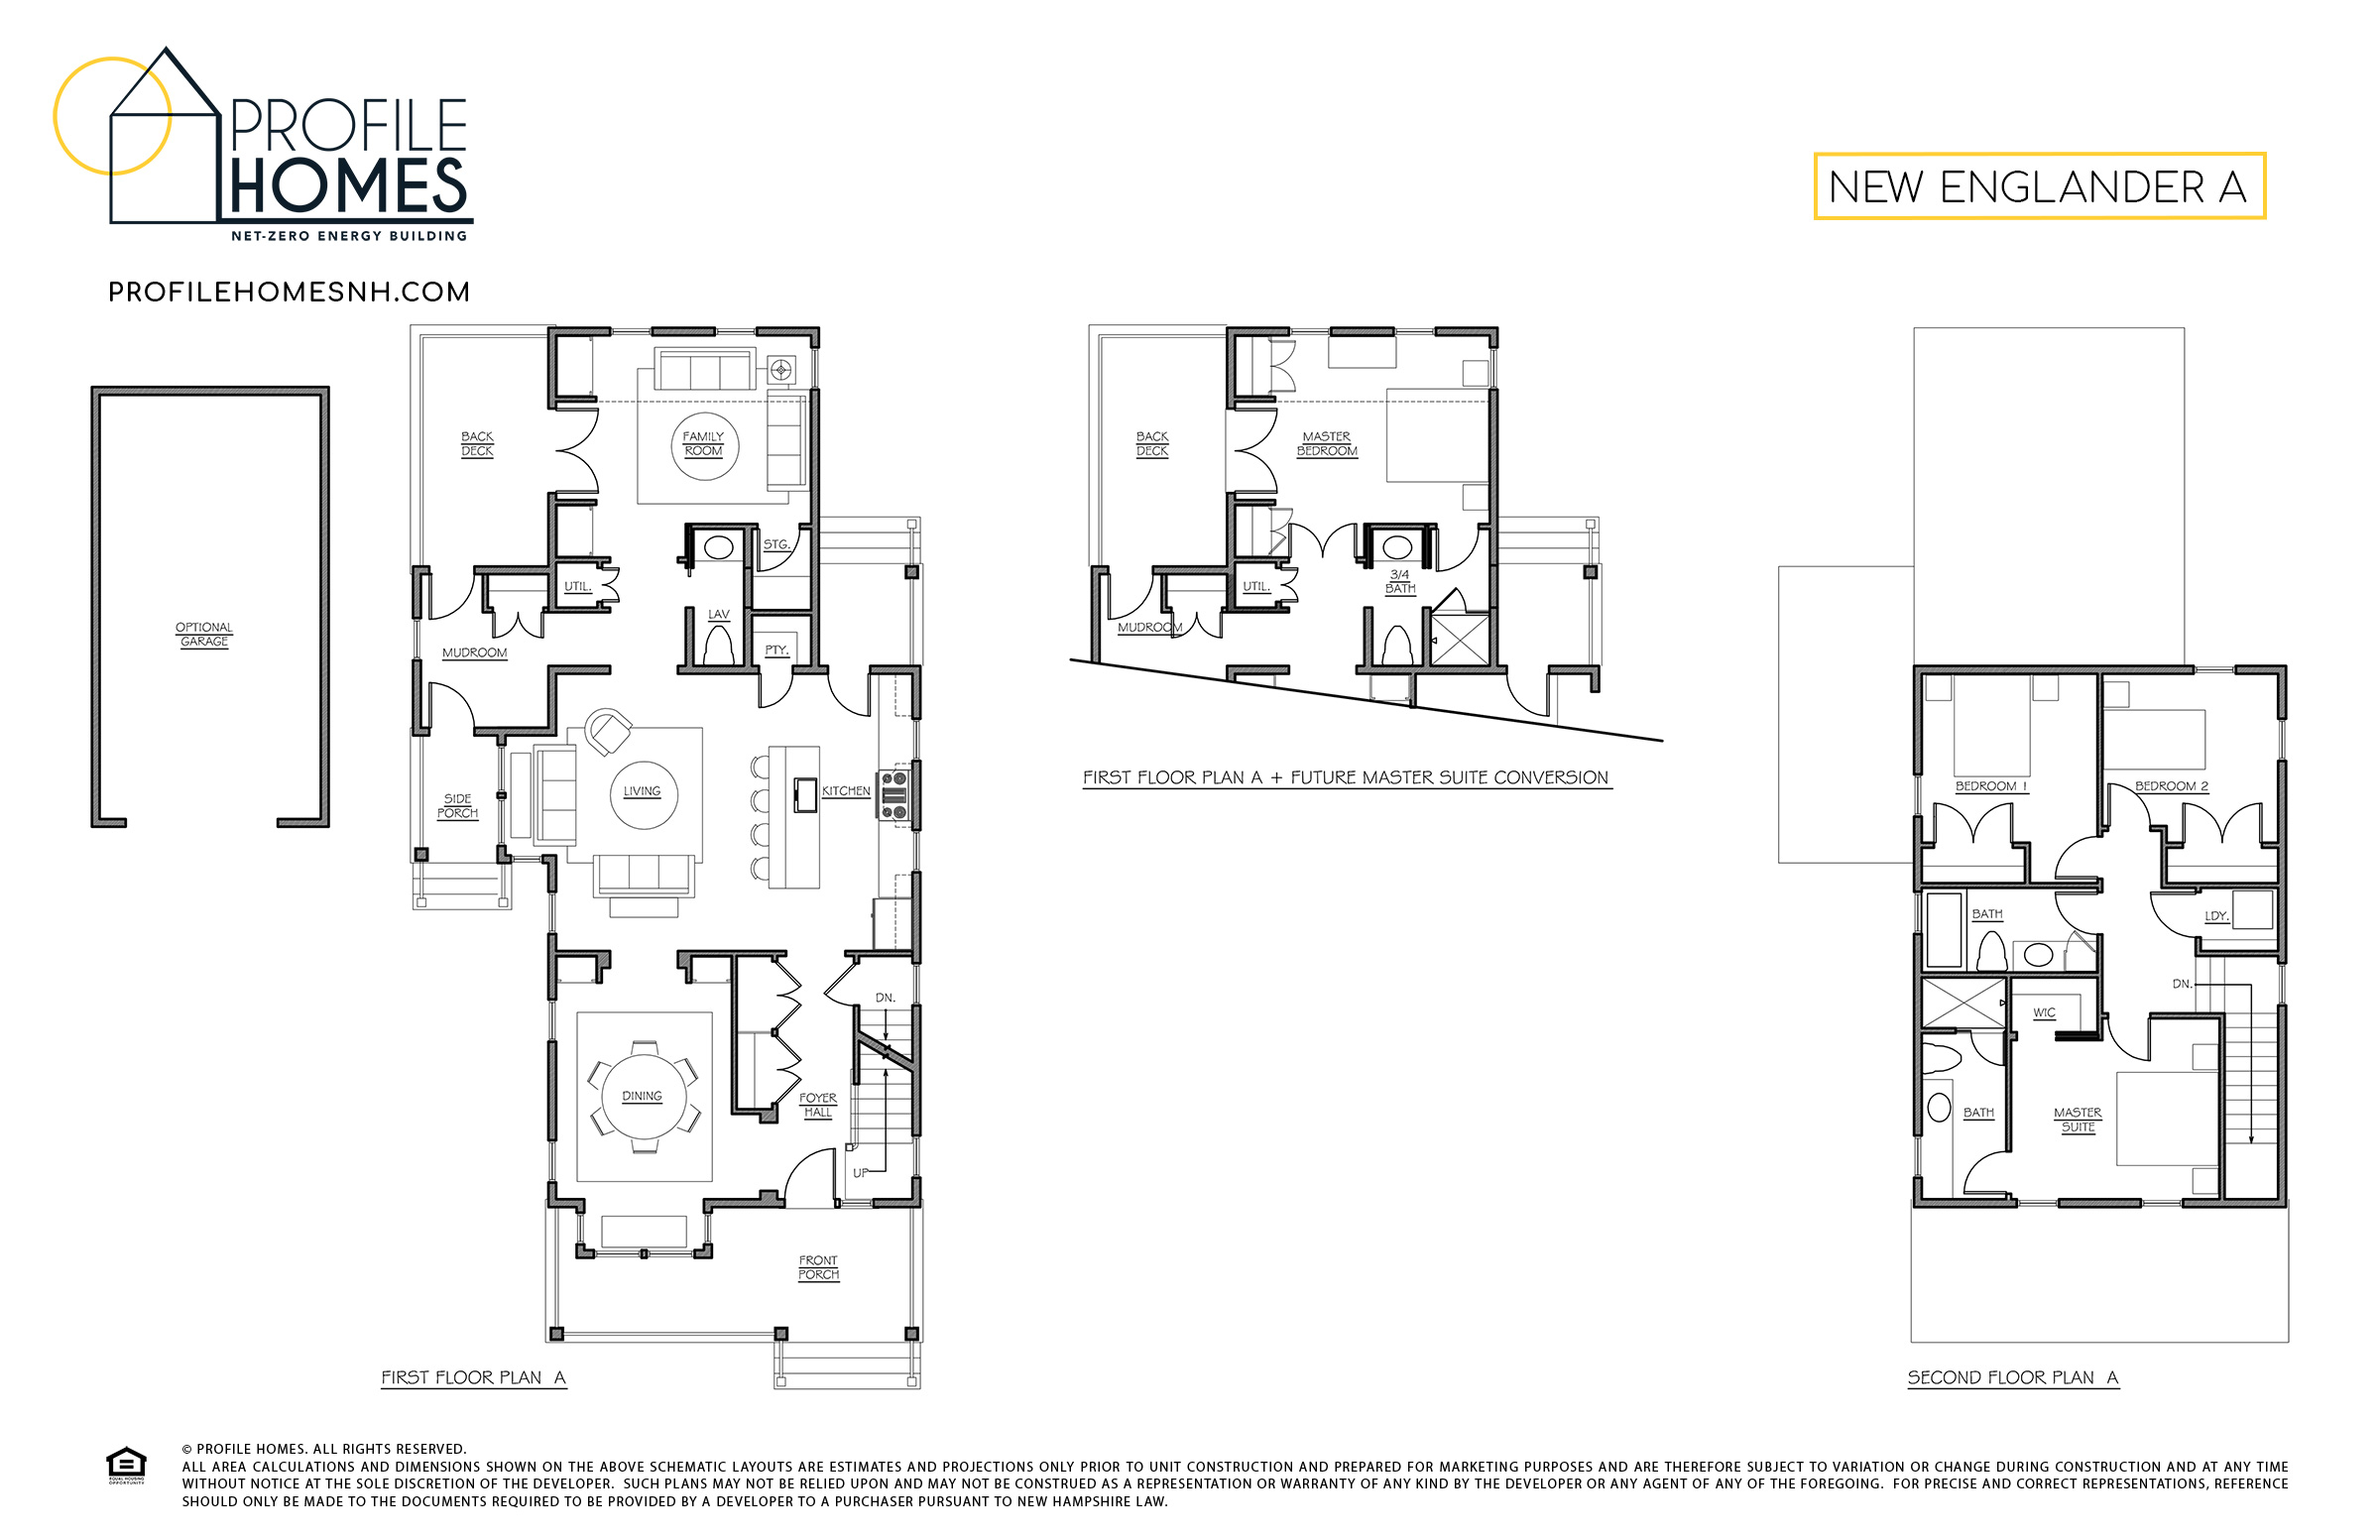 Profile Homes Floorplan New Englander A © 2018 Profile Homes